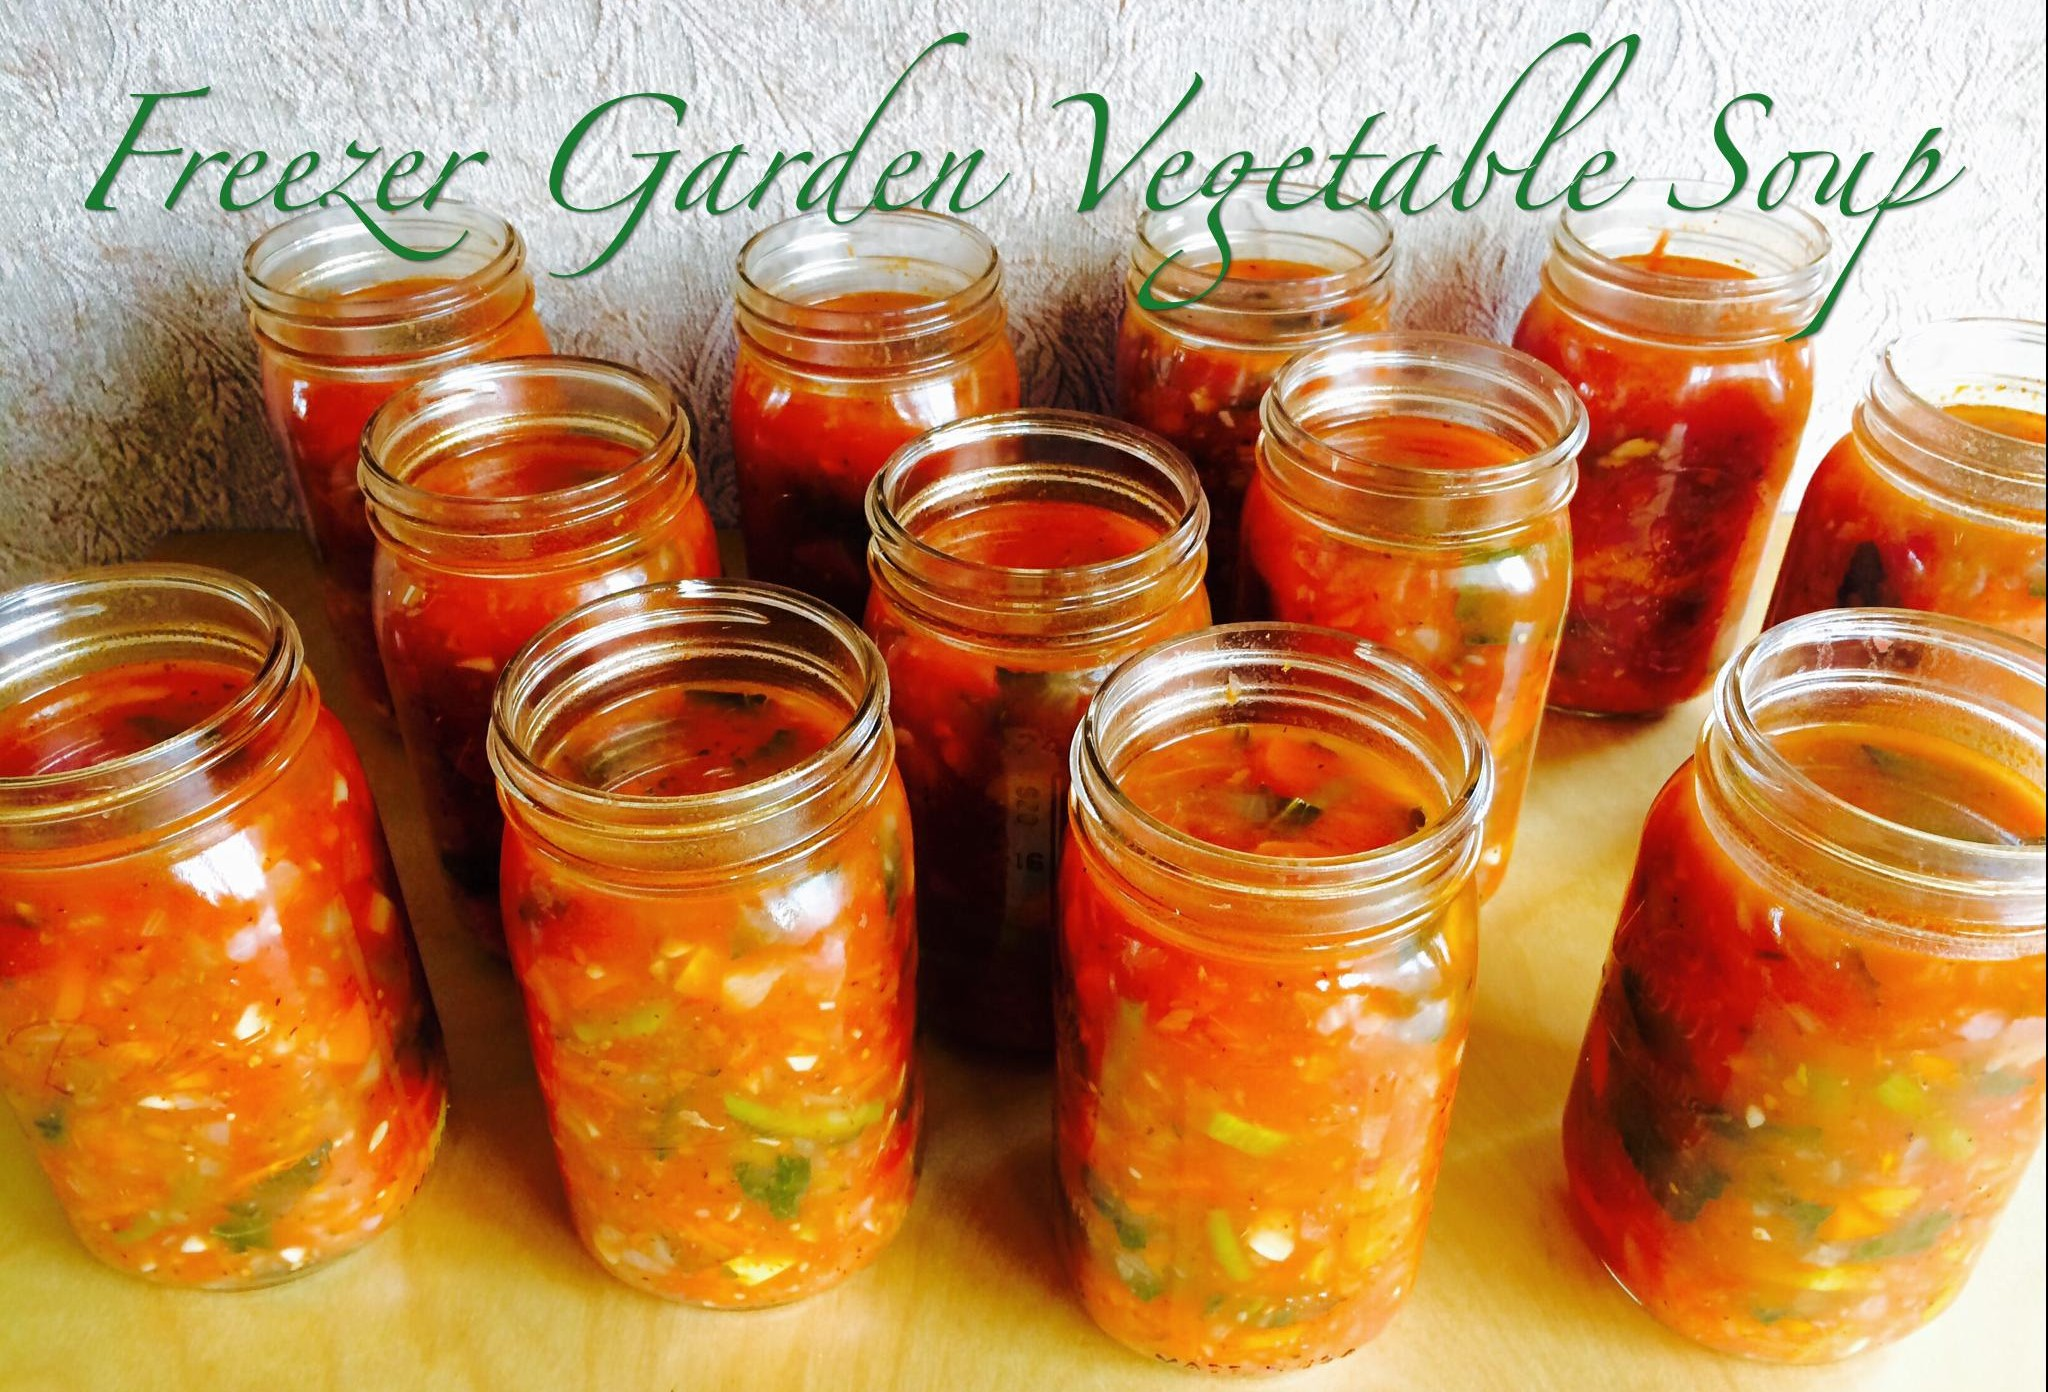 Freezer Garden Vegetable Soup